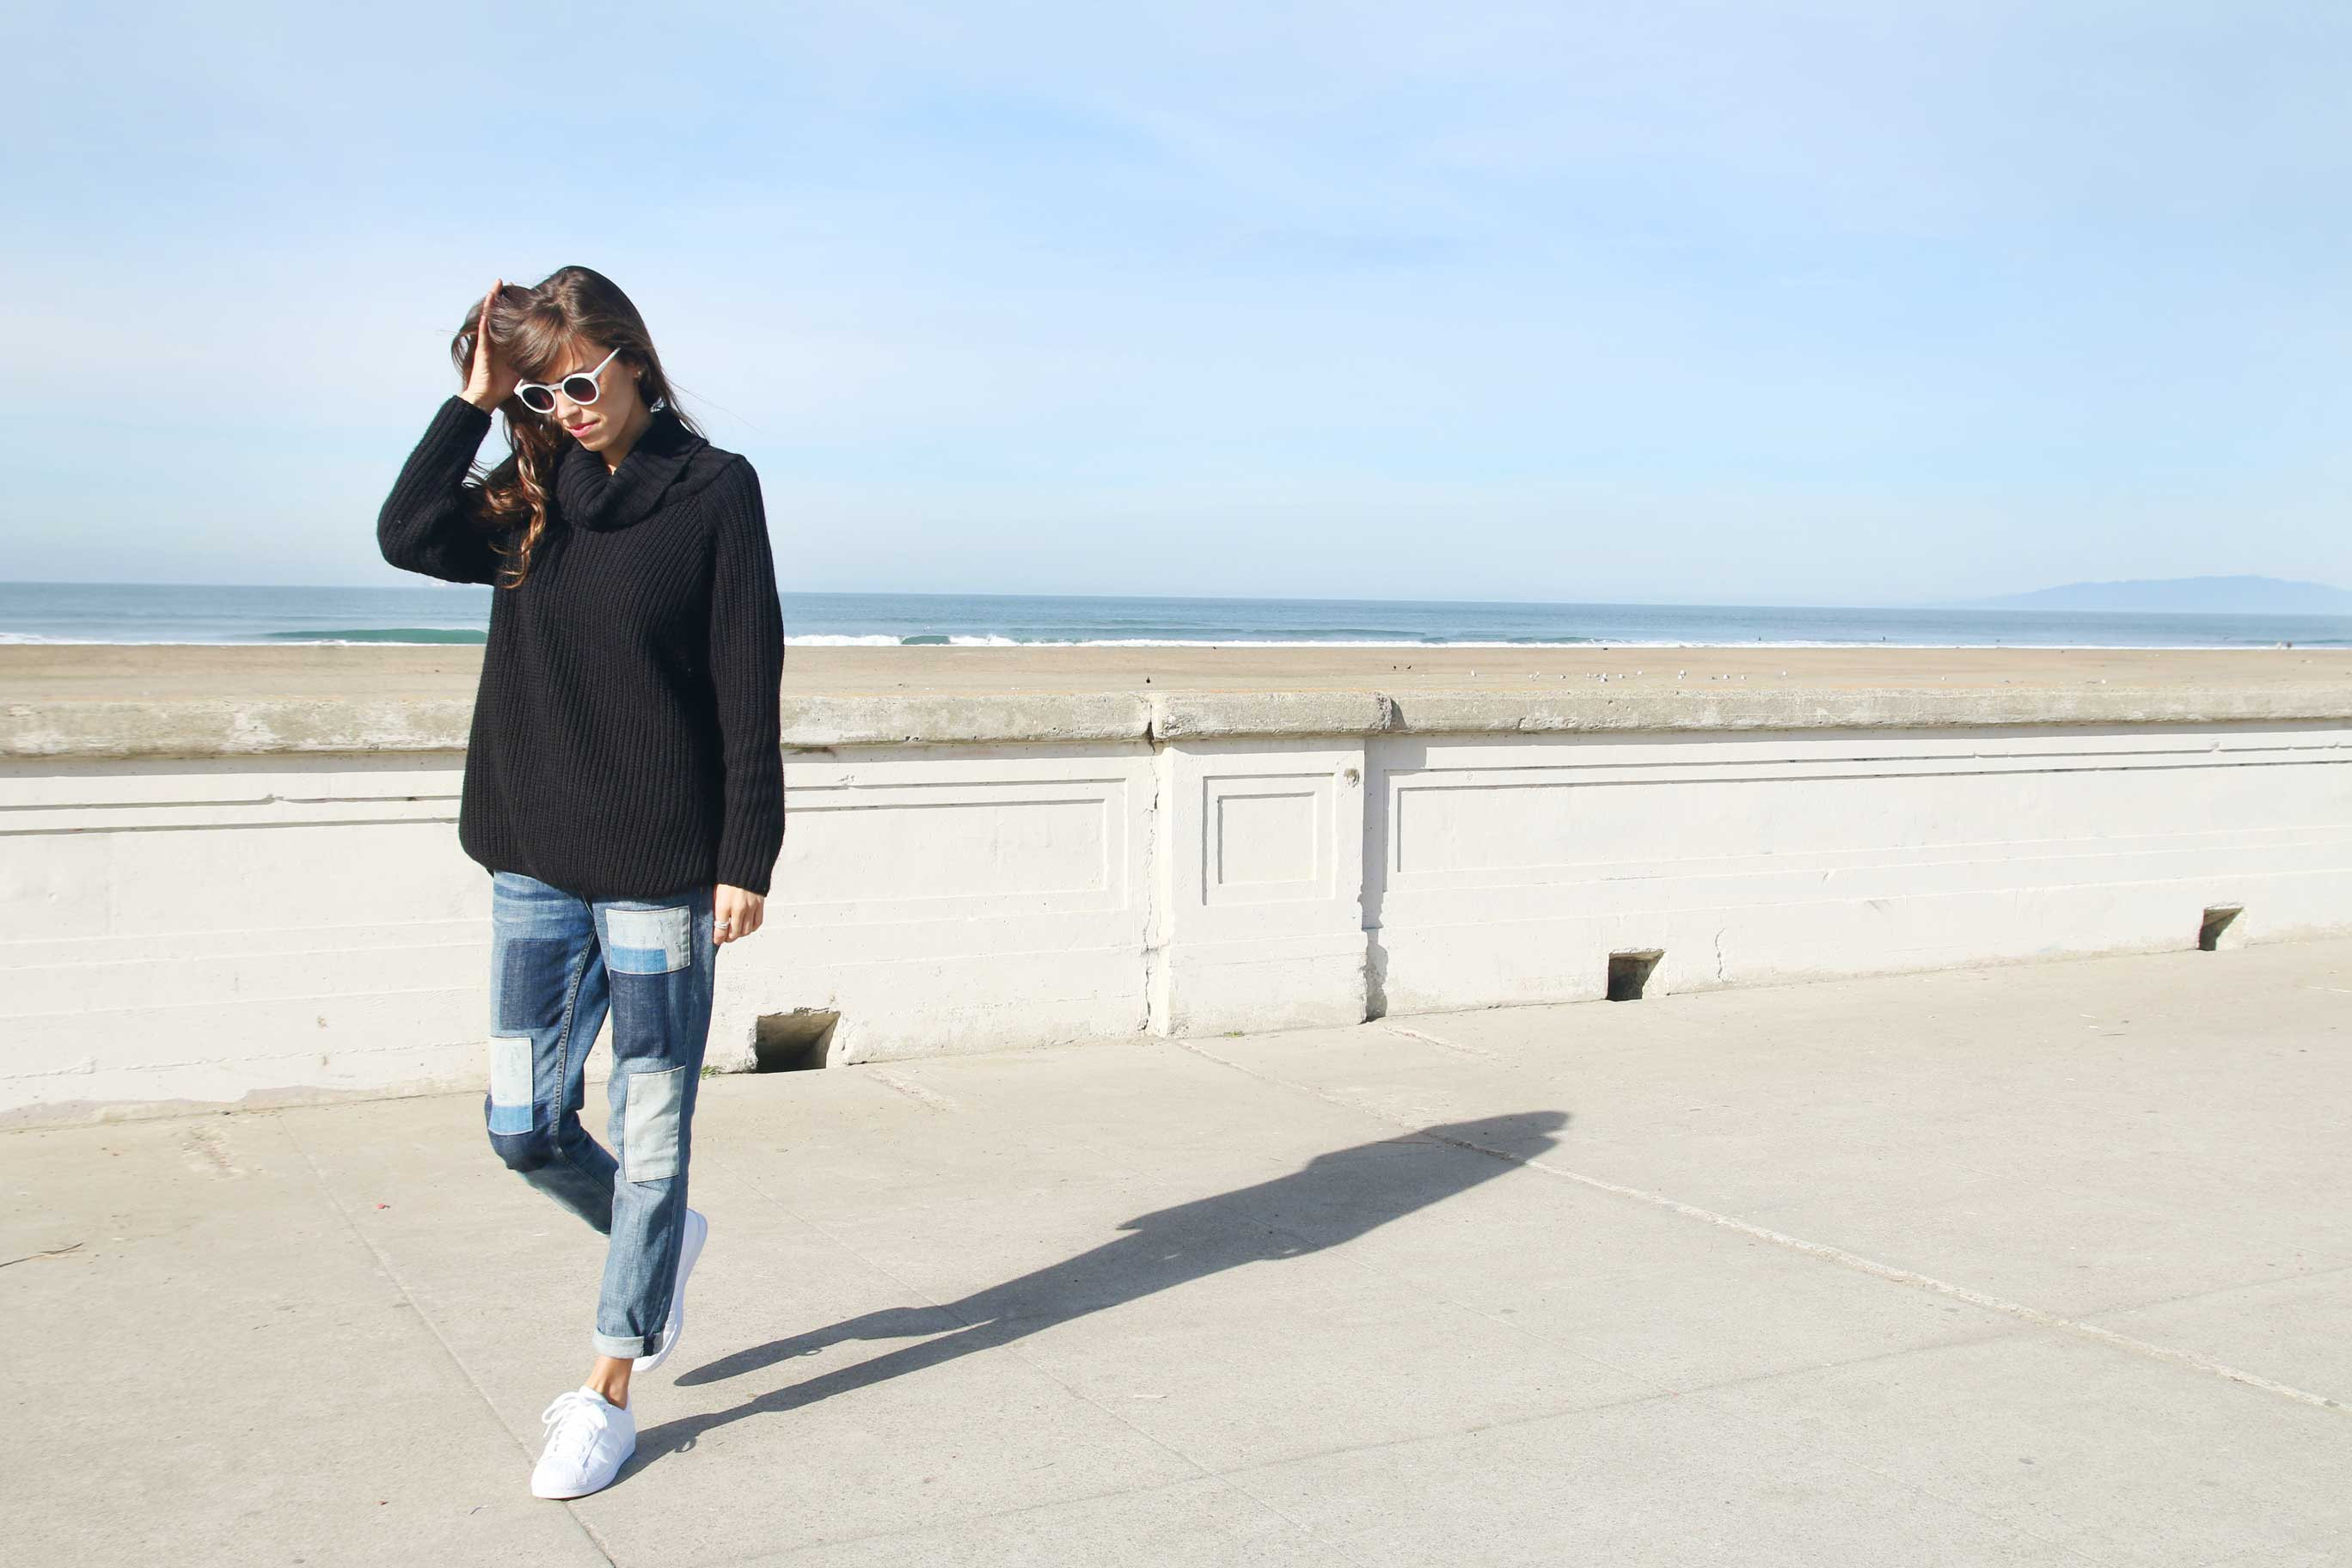 kendall at beach in turtleneck, jeans and adidas